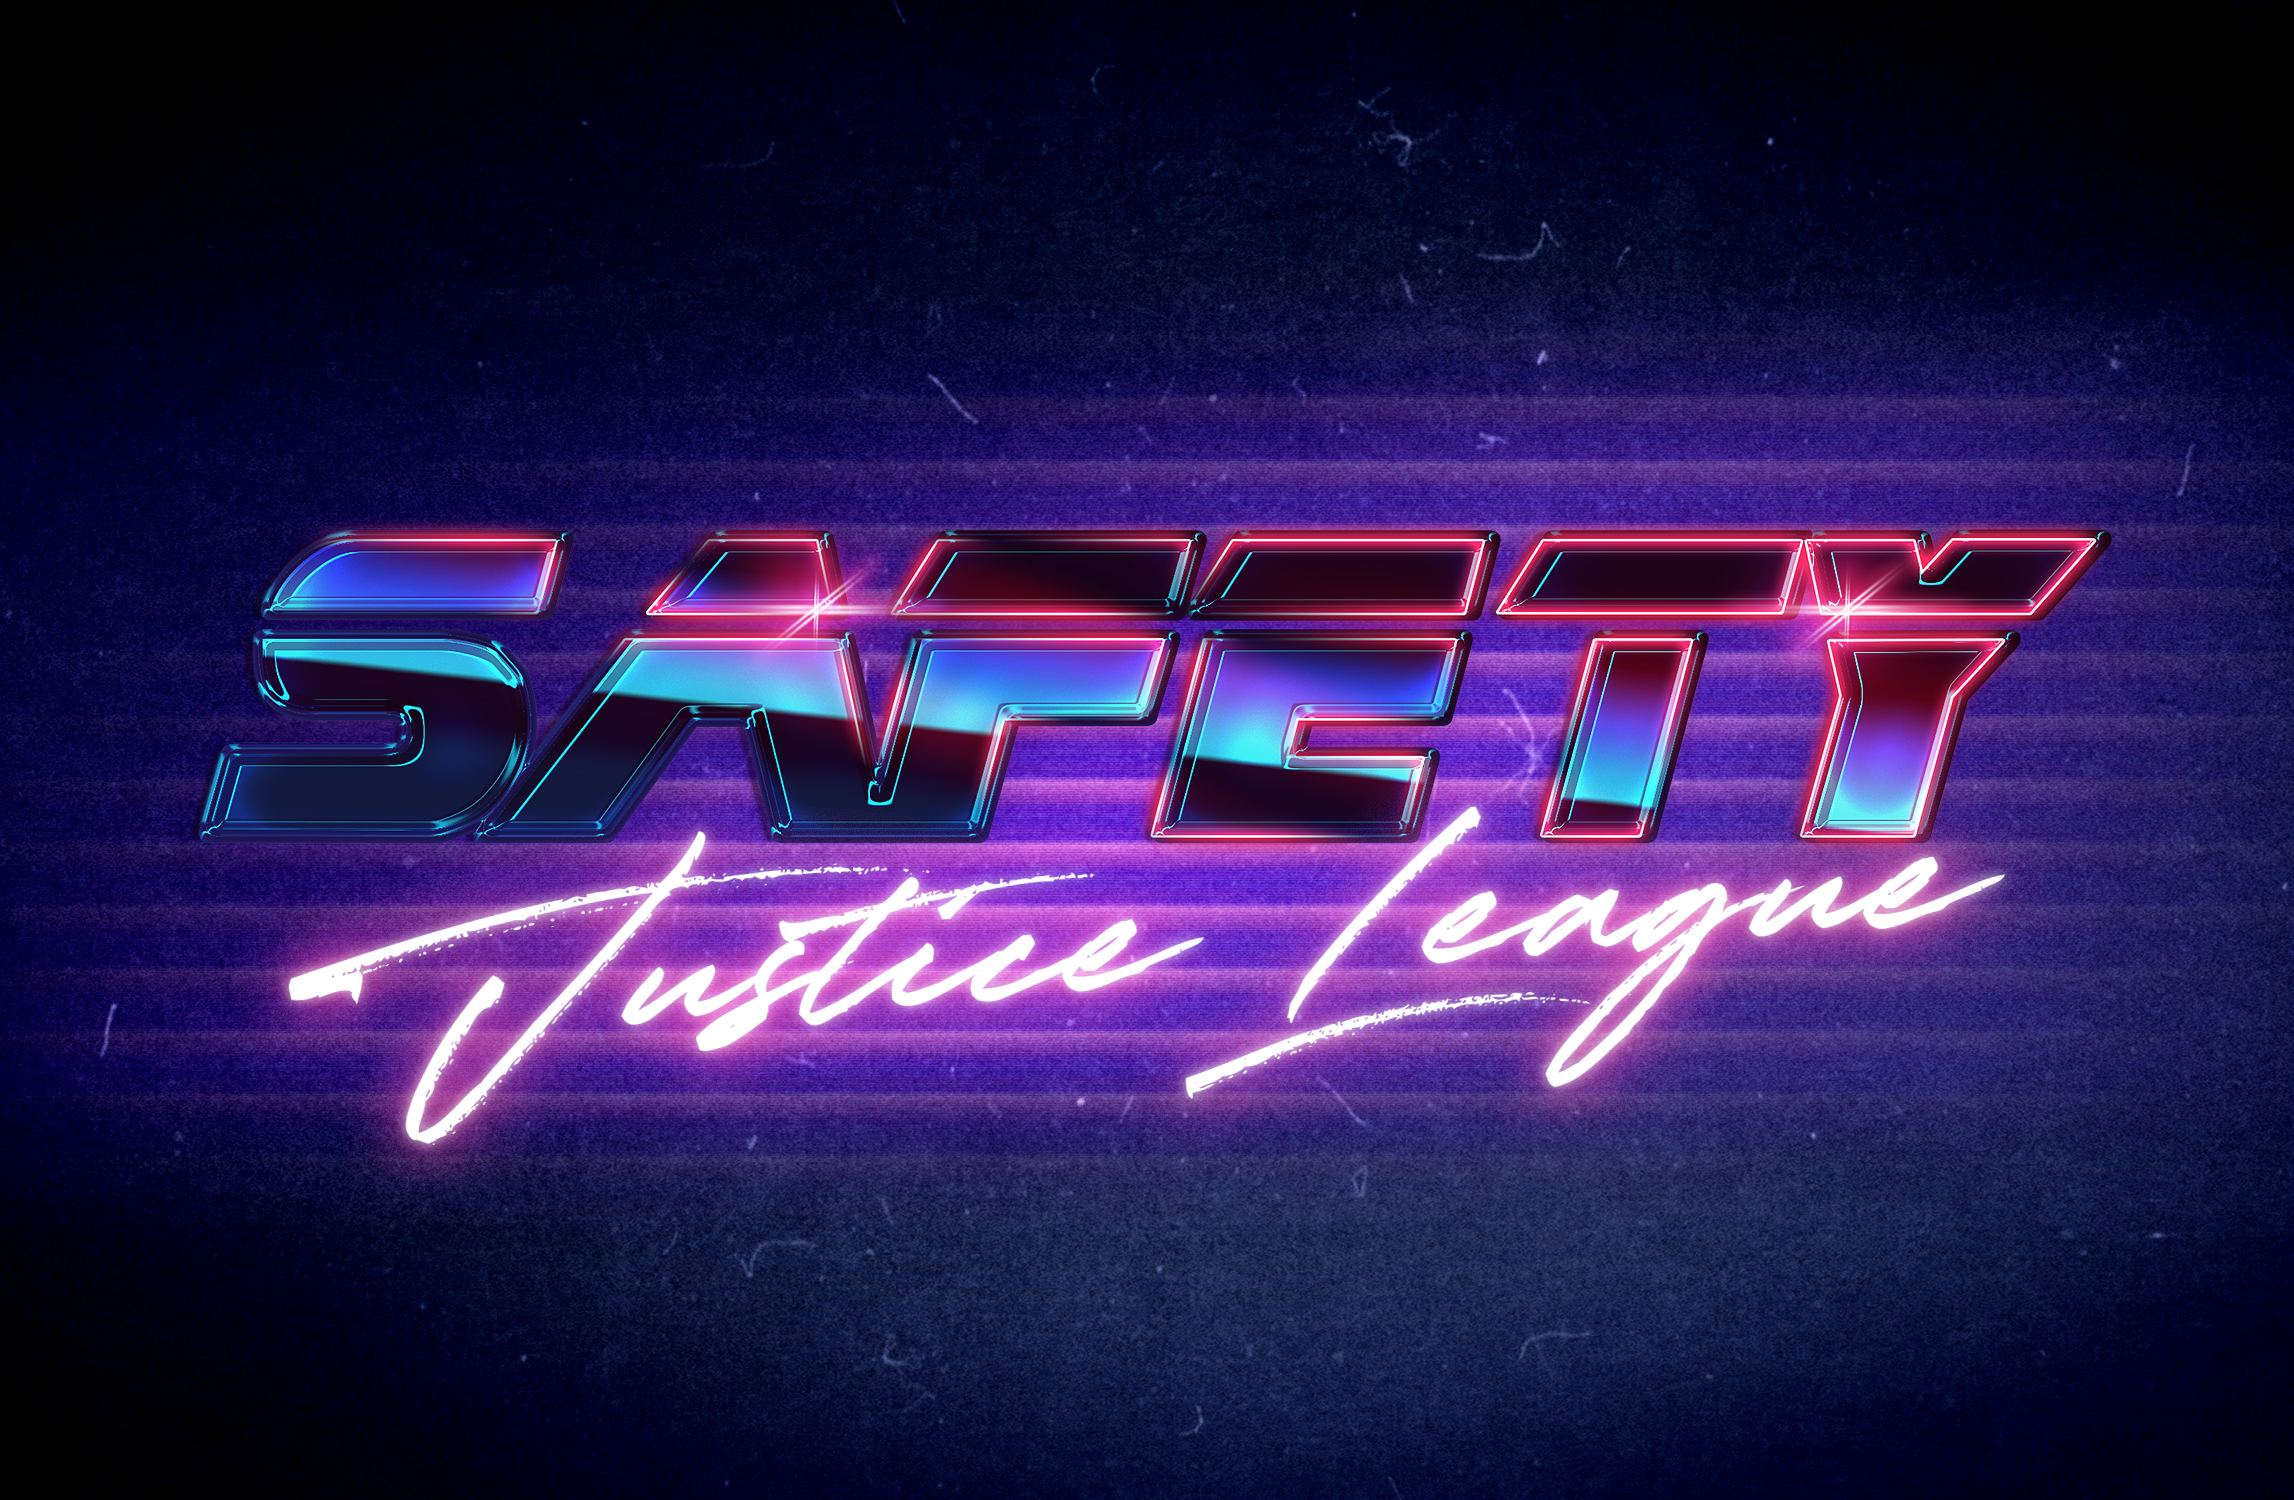 Safety Justice League - Safety Justice League